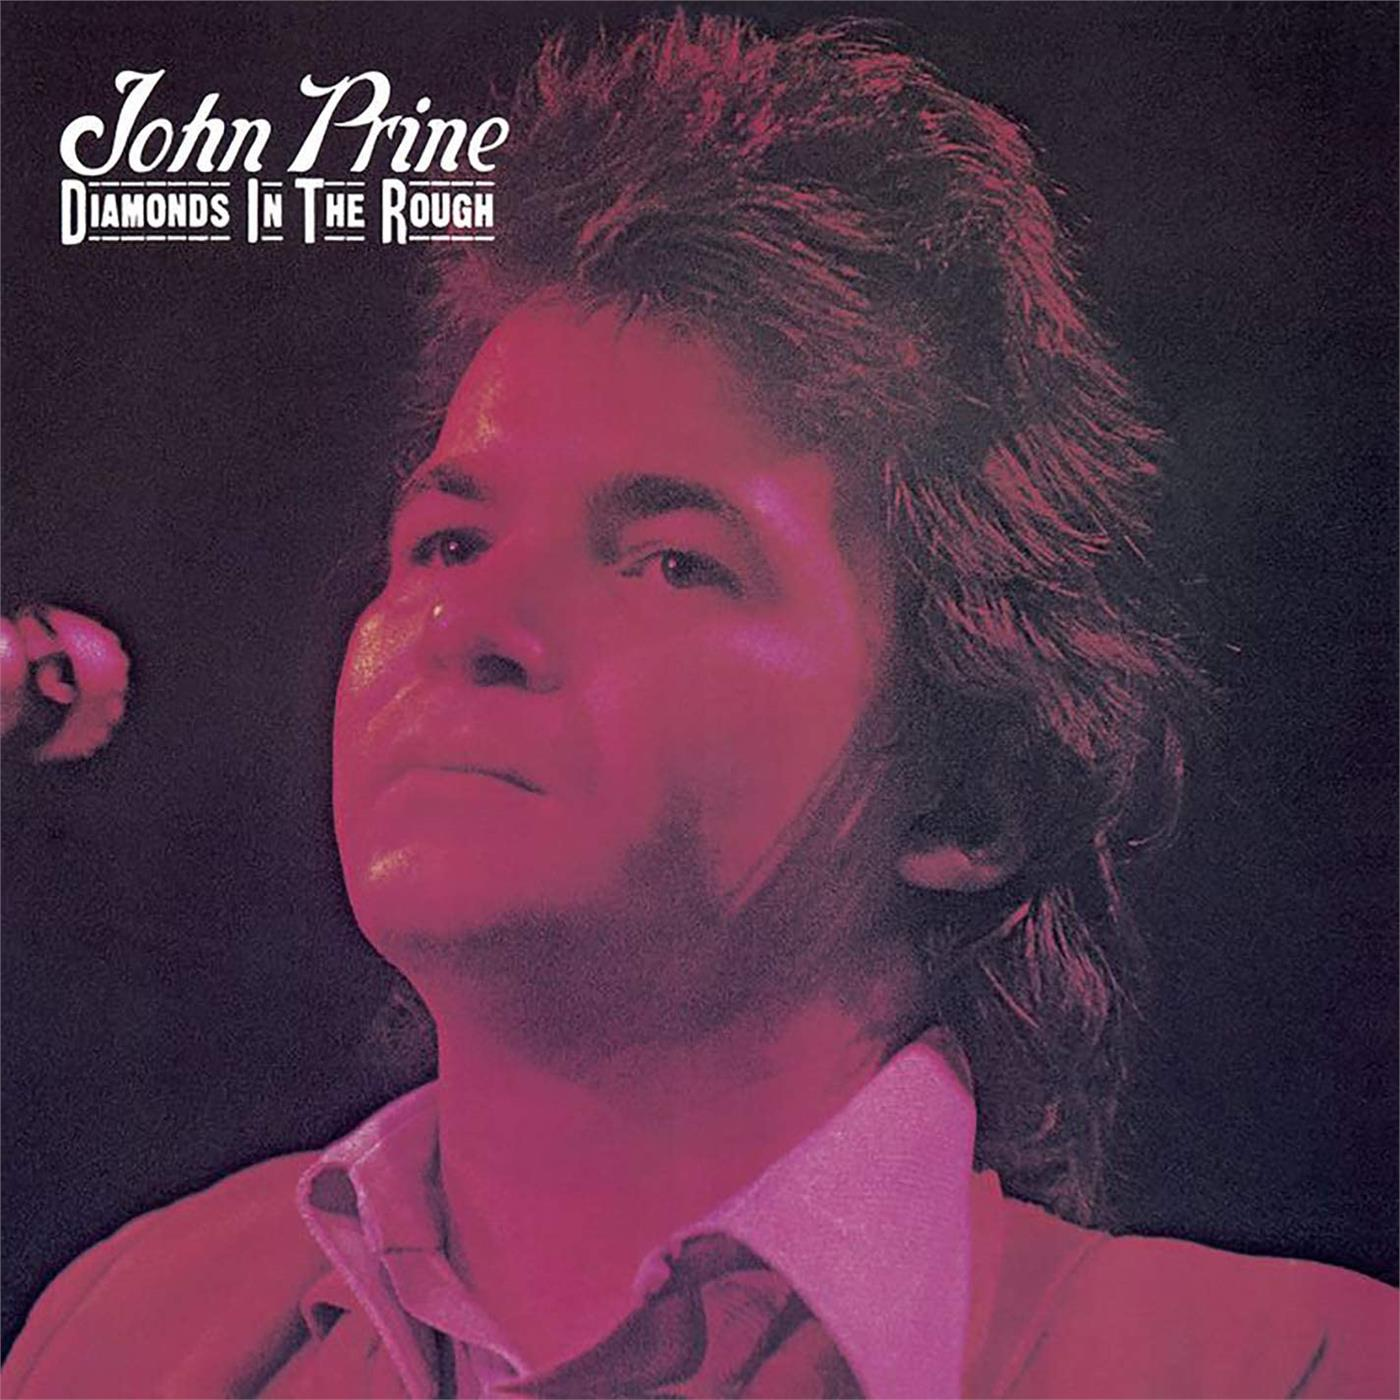 John Prine - Diamonds in the Rough [LP]